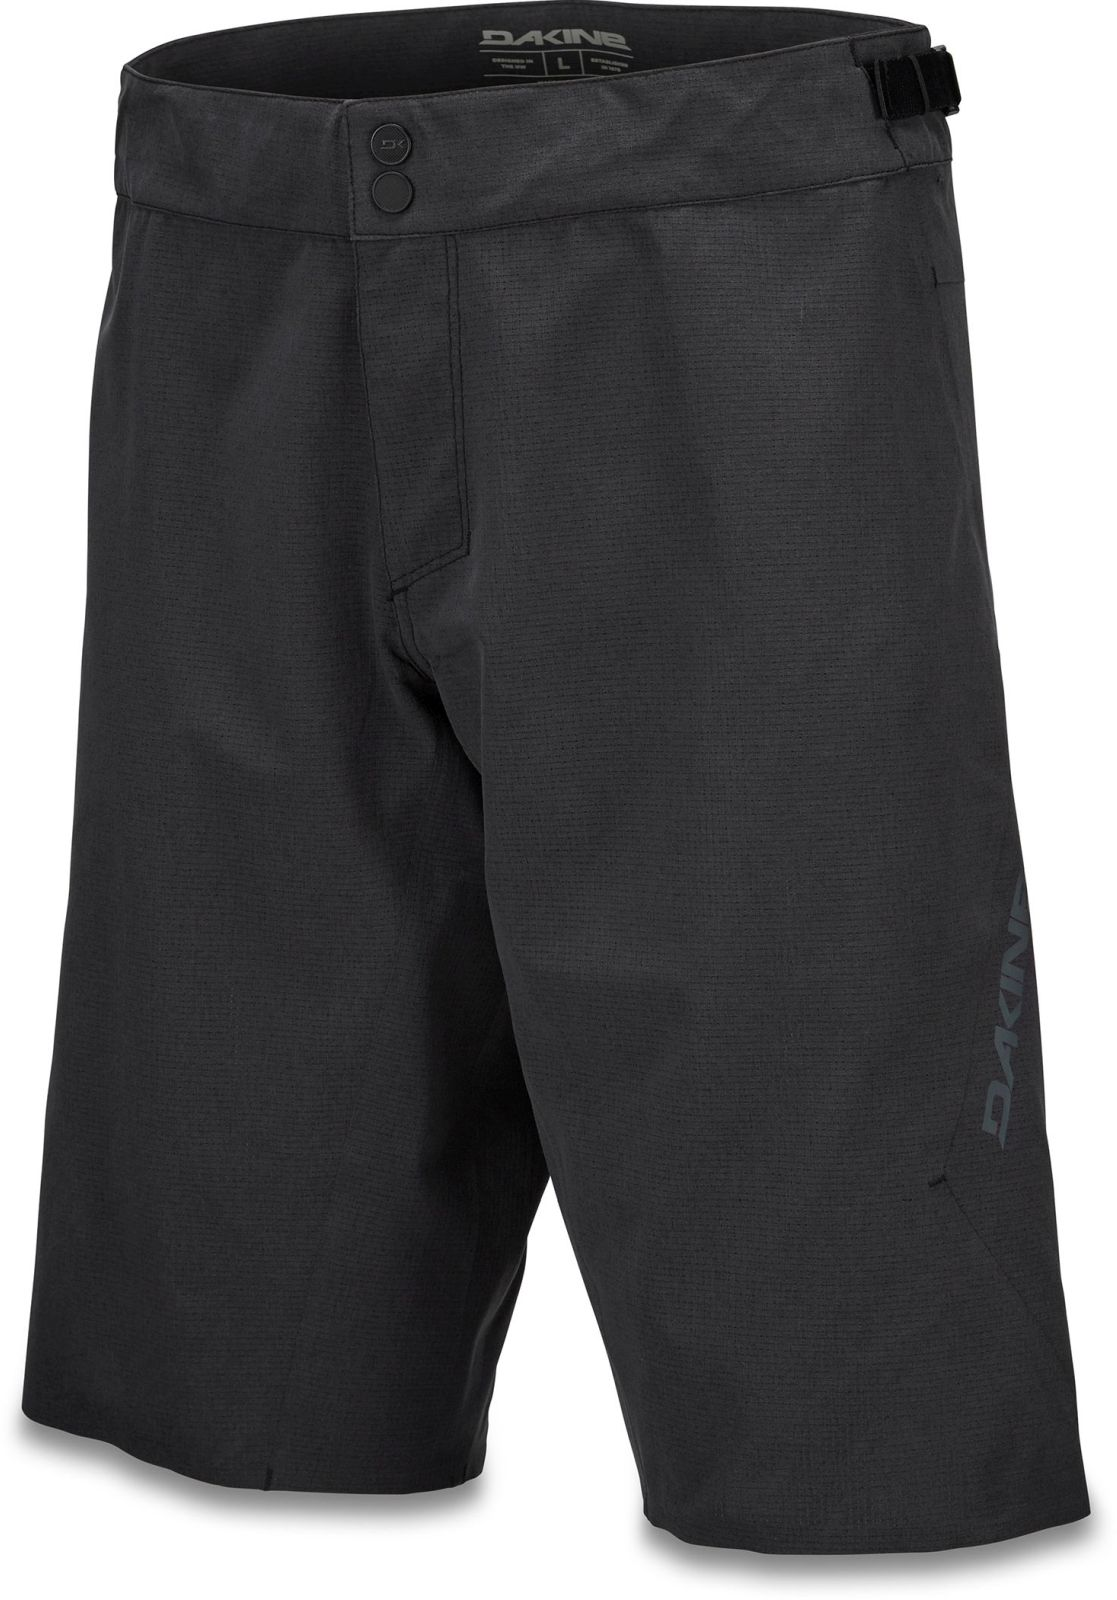 Dakine Boundary Short - black L